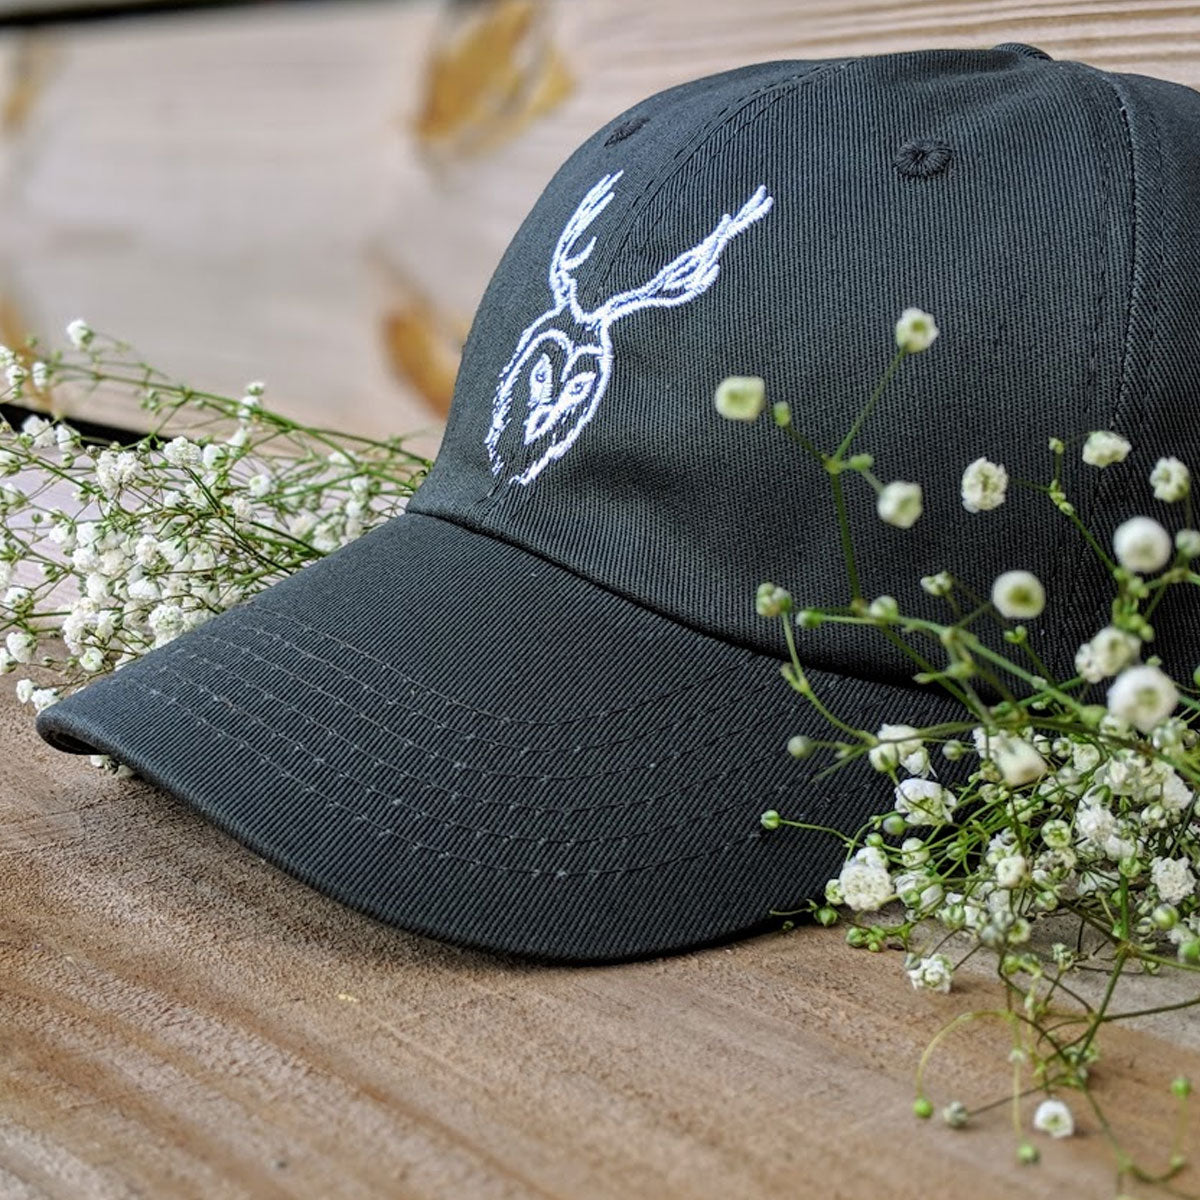 Front Left view of 'Dad Hat' style hat with unseen creatures logo with decorative weeds